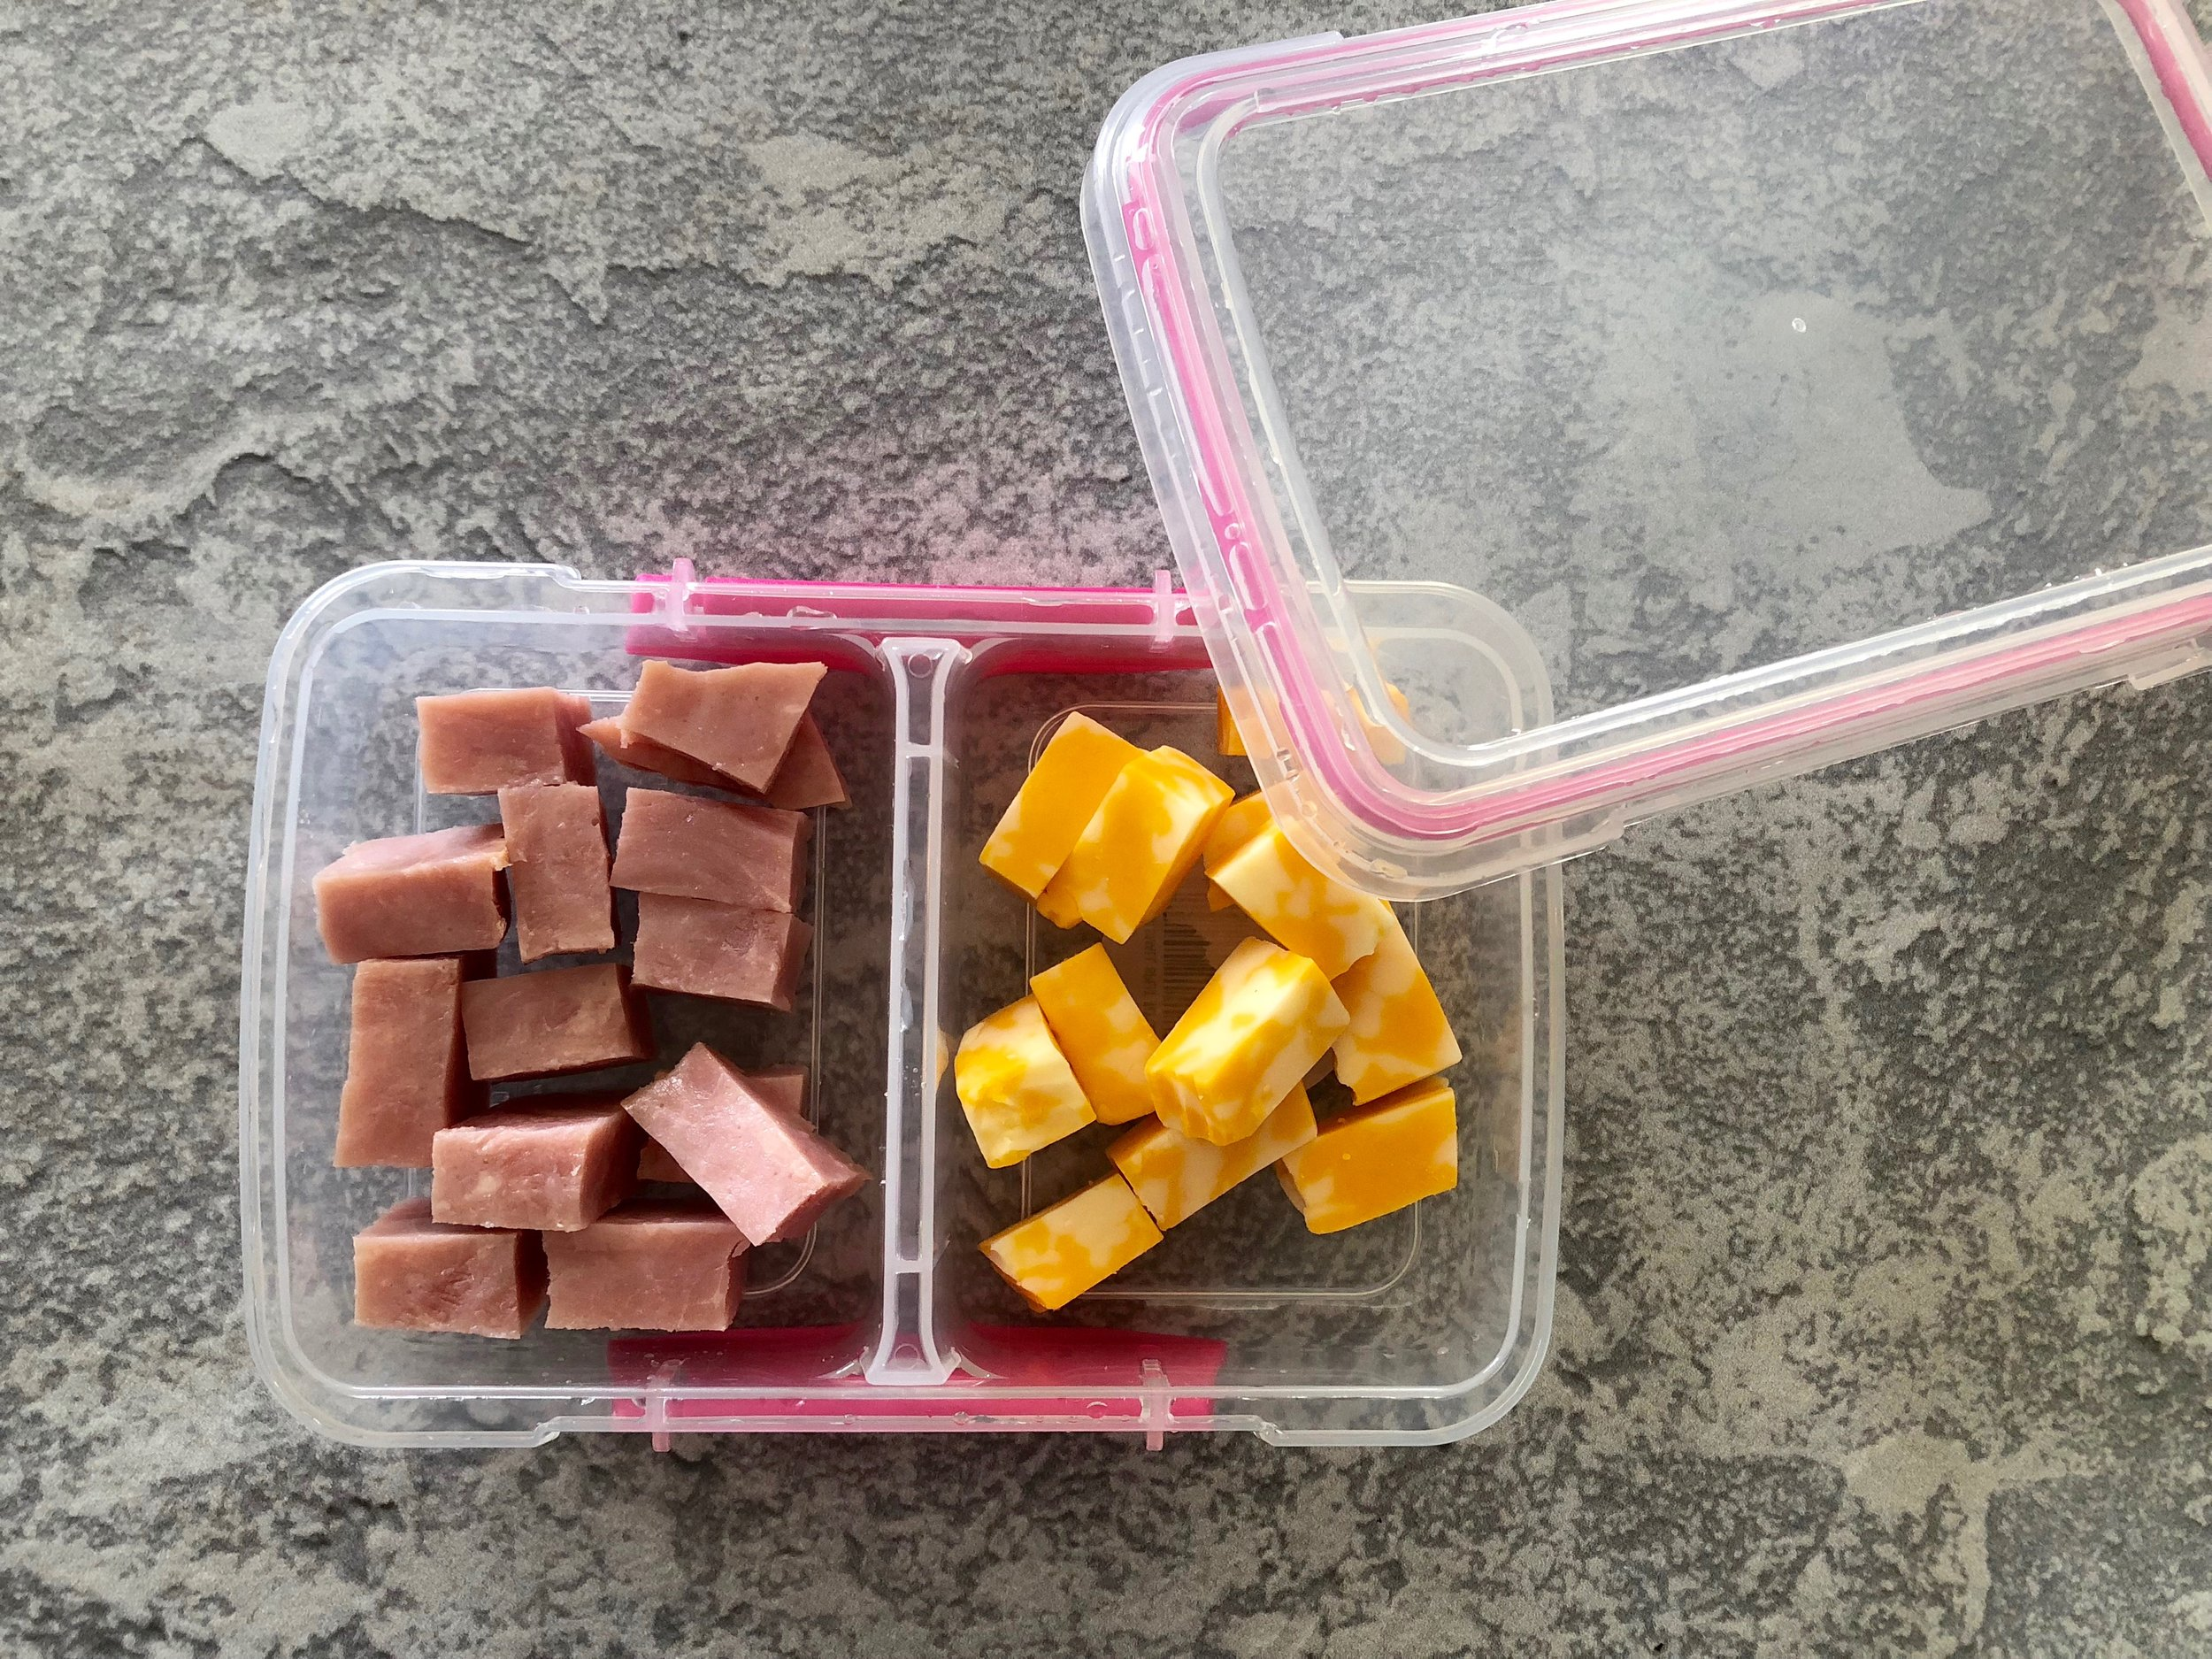 School lunch ham with Cheese keto and low carb